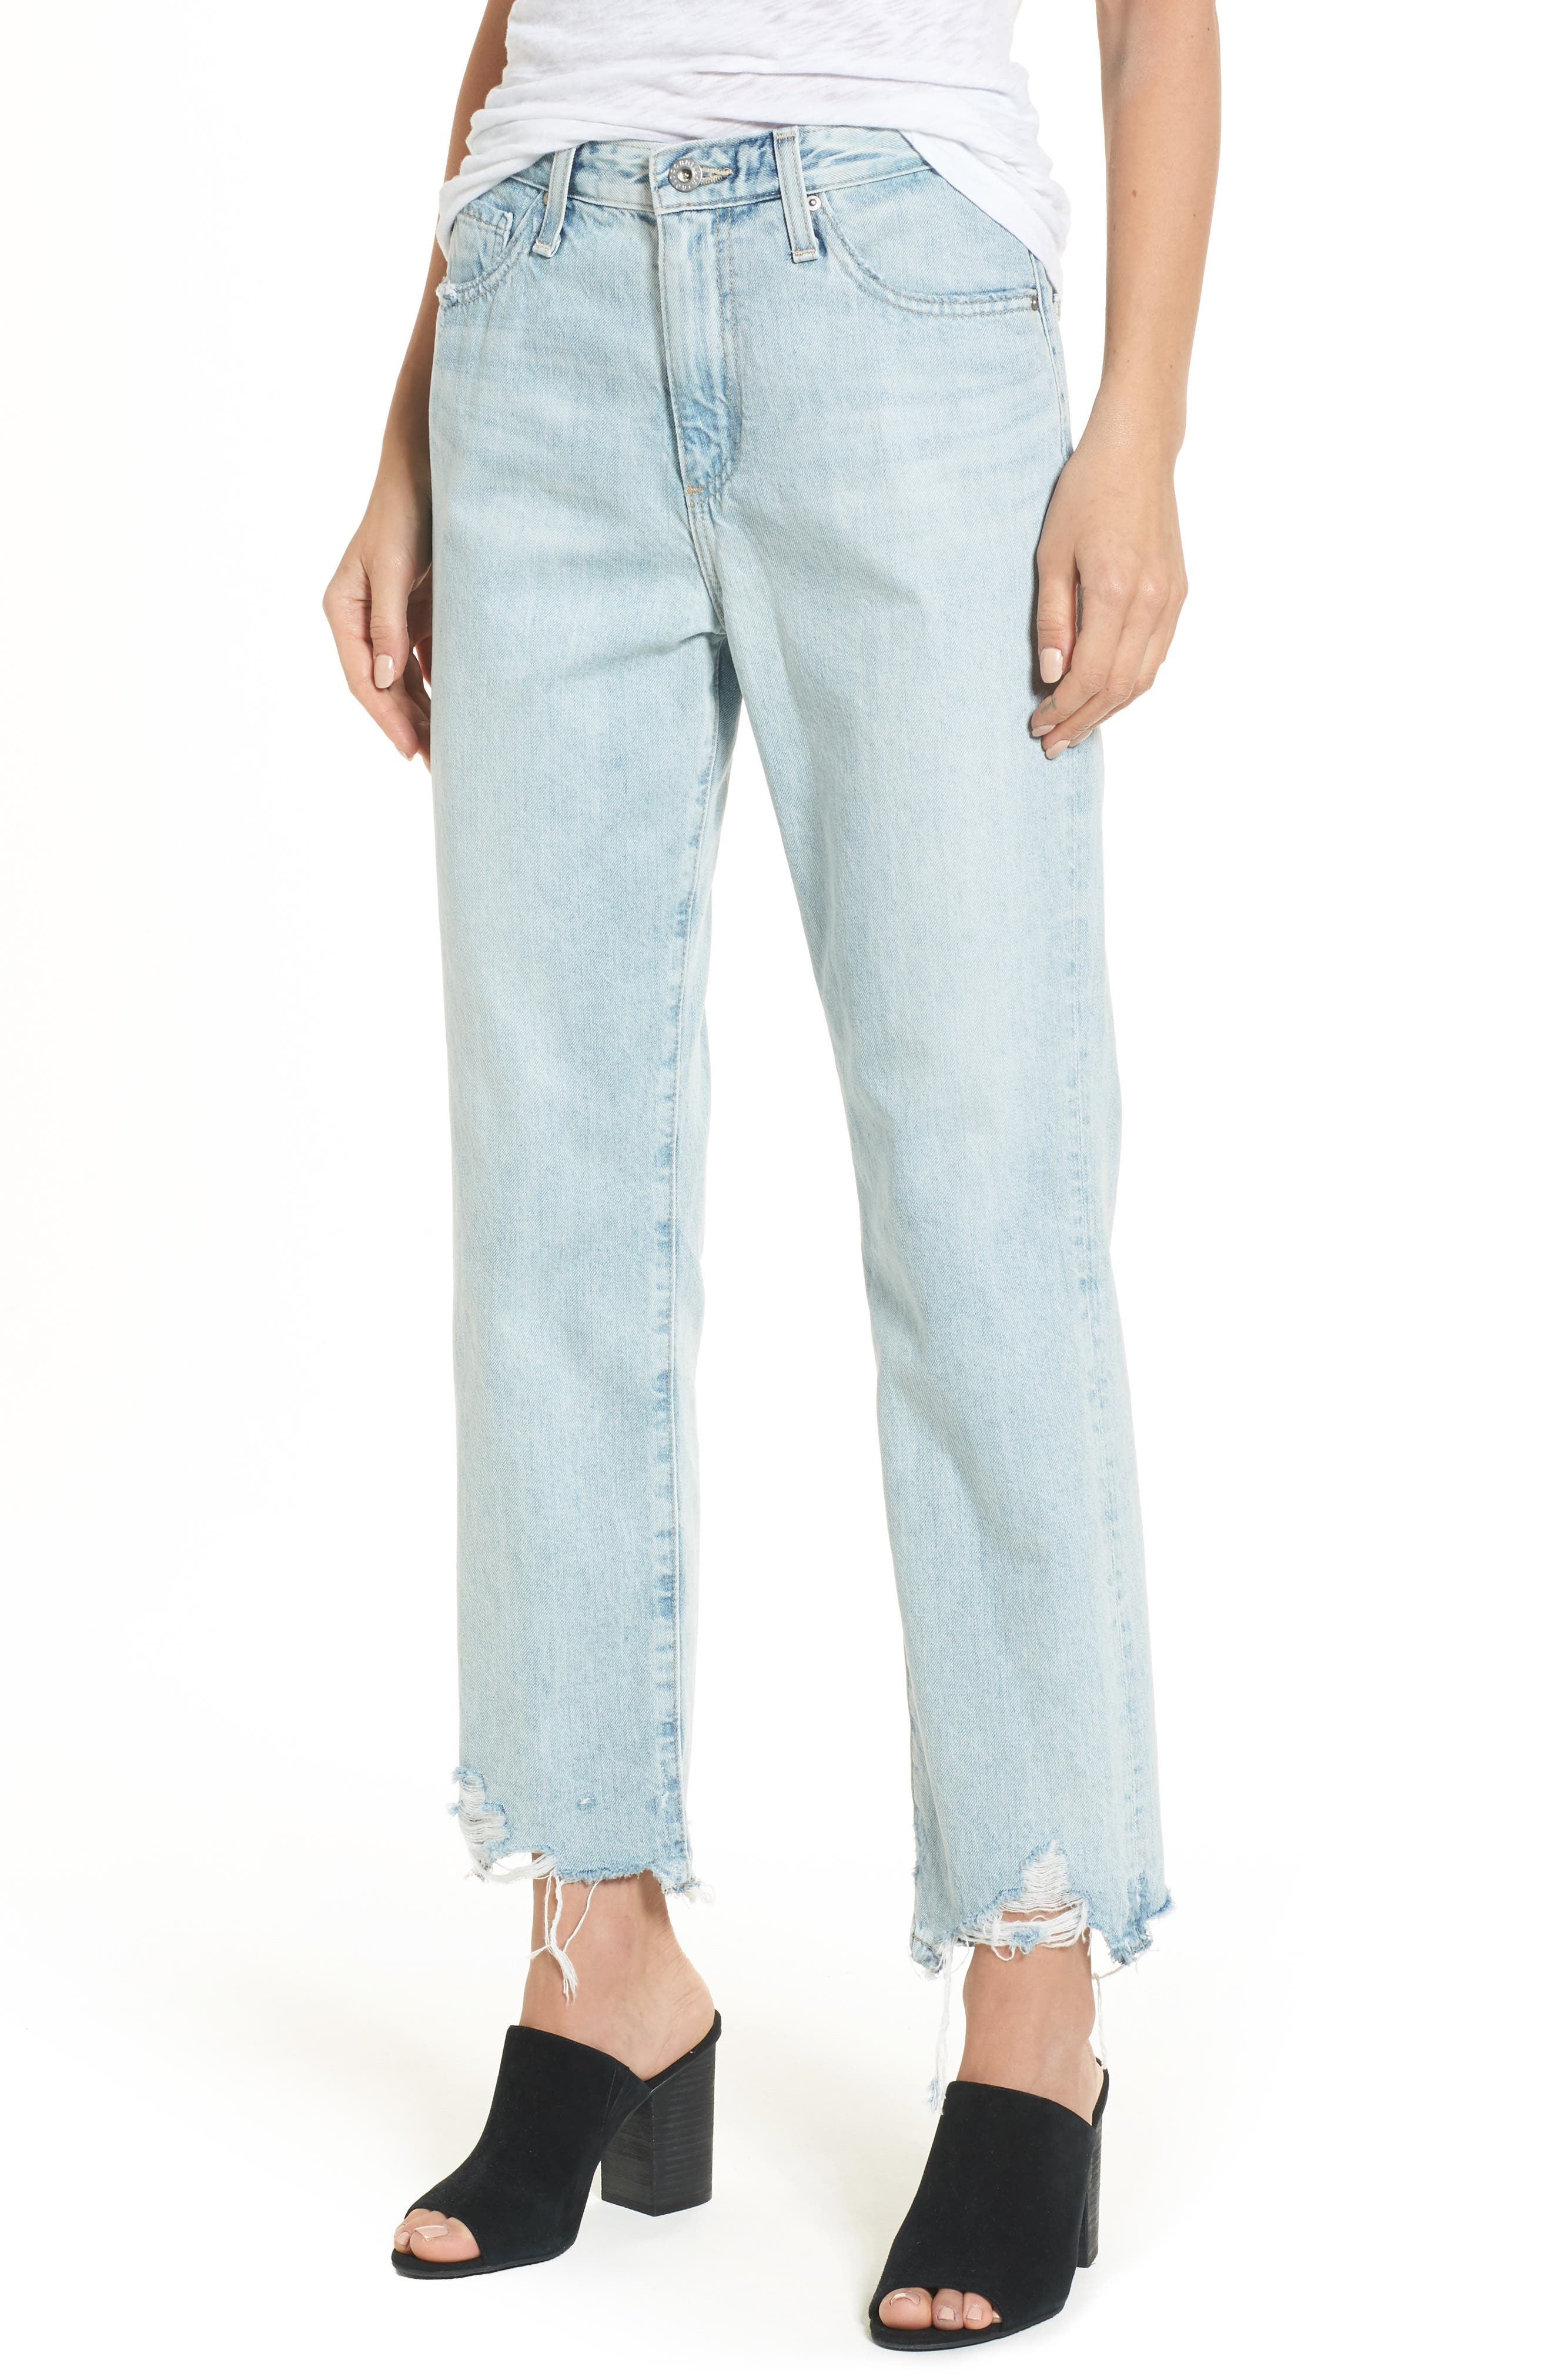 Alternate Image 1 Selected - AG The Phoebe High Rise Straight Leg Jeans (Bering Wave)